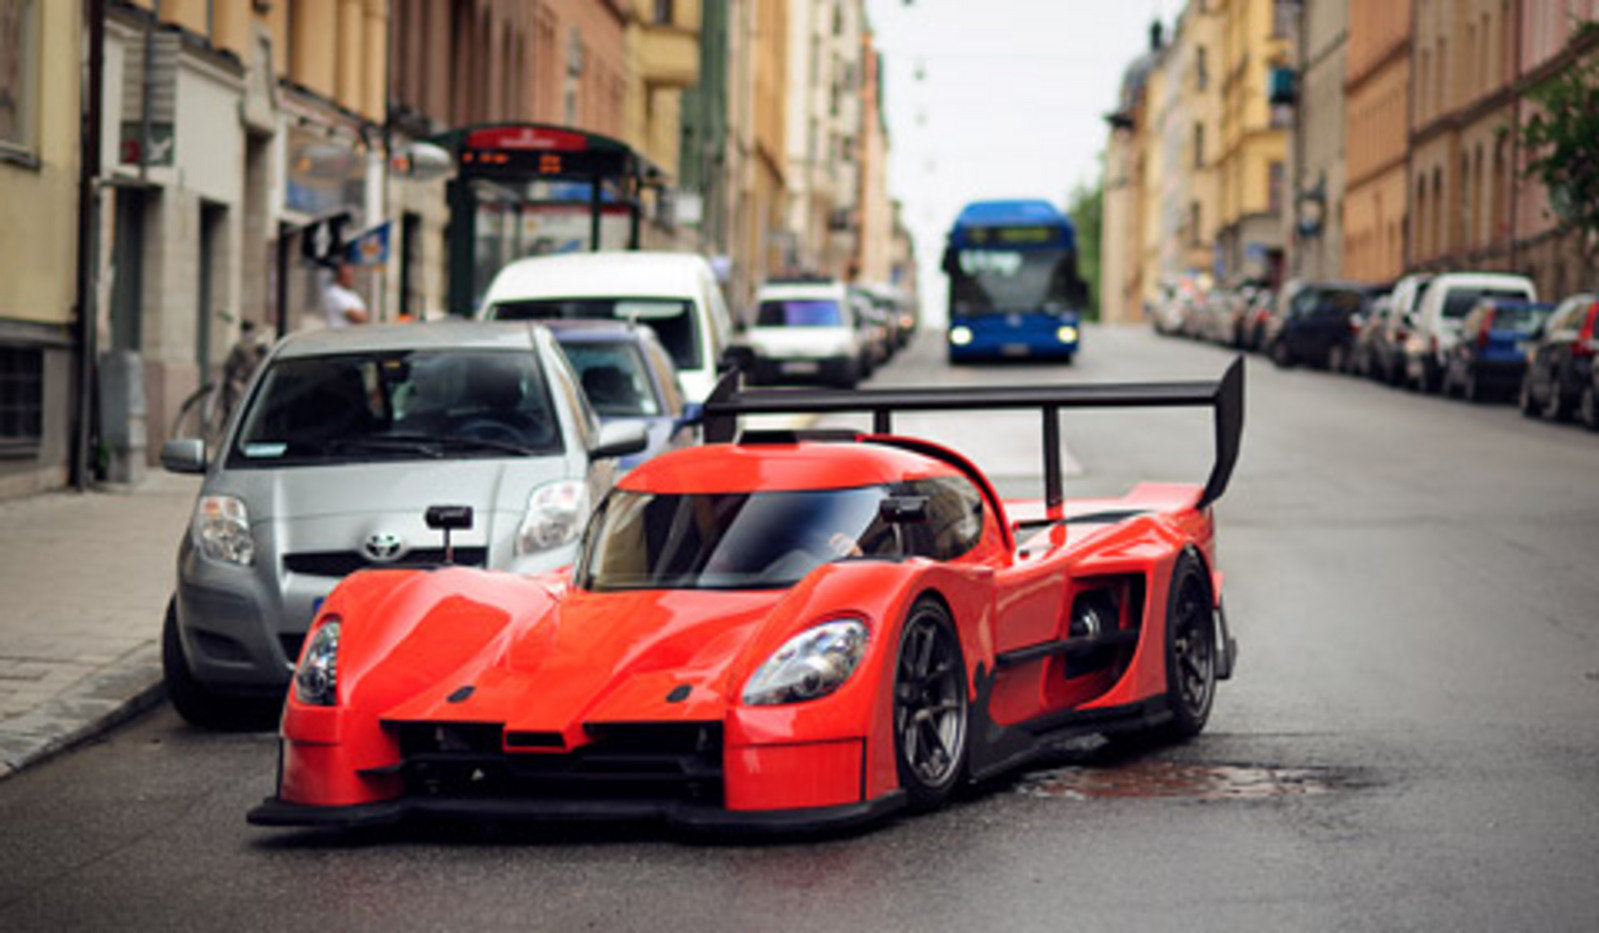 2011 rebellion r1k ultima gtr by jon olsson review top speed. Black Bedroom Furniture Sets. Home Design Ideas